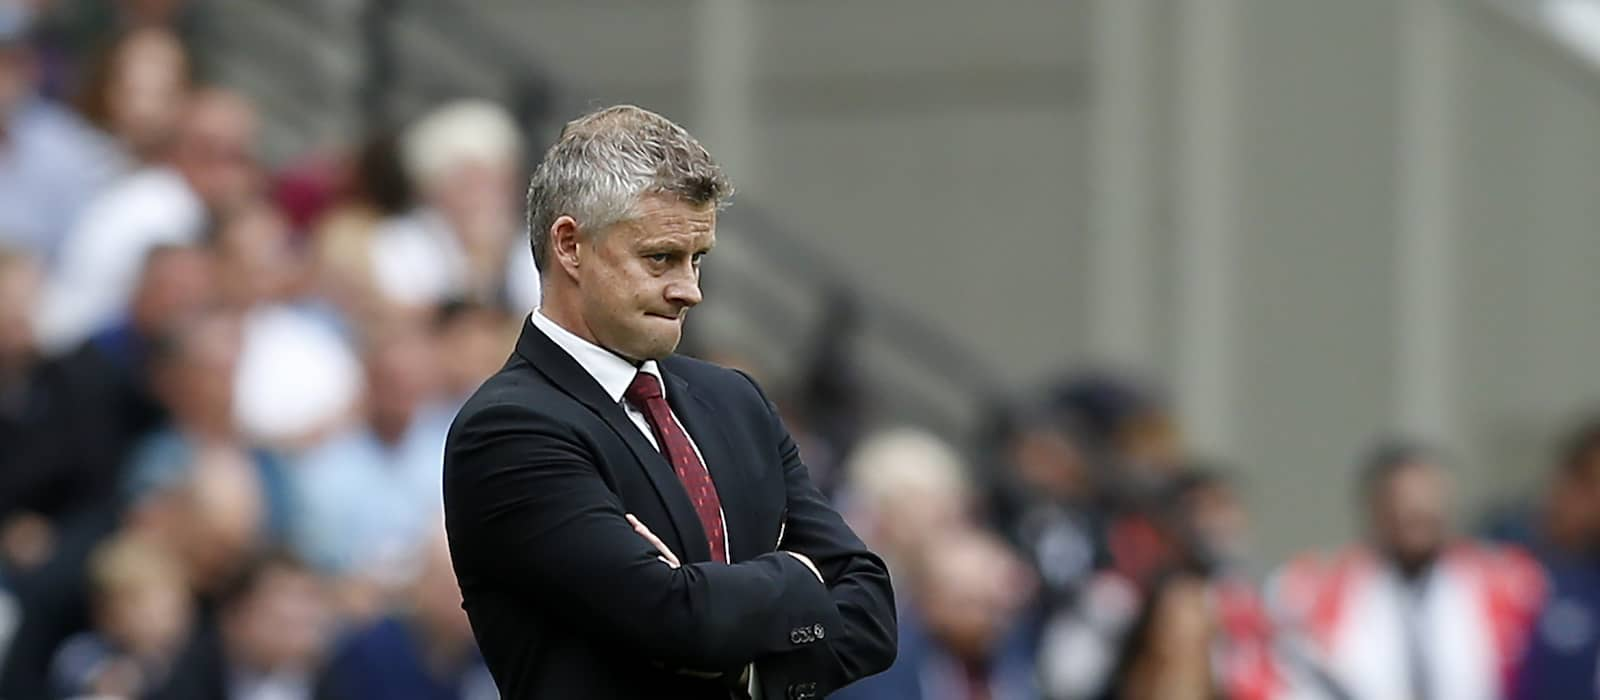 Manchester United players urged board to stick with Ole Gunnar Solskjaer prior to Tottenham Hotspur clash – report